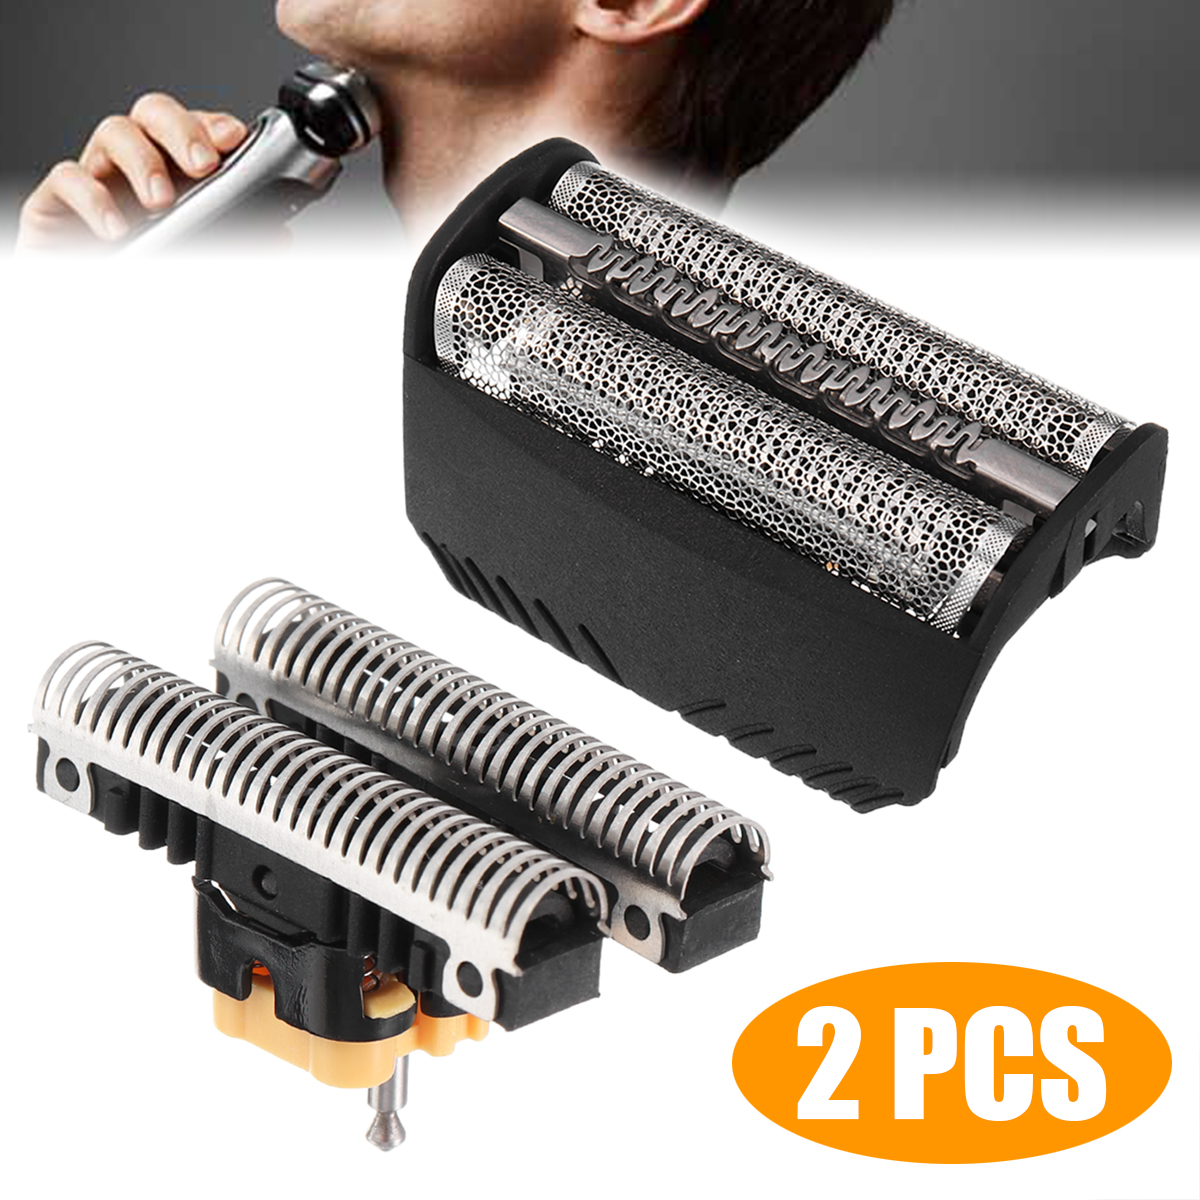 1 Set Shaver Shaving Head Shearing Foil 30B For 310 330 Series 3 7000 4000 Shaving Head Parts Personalcare